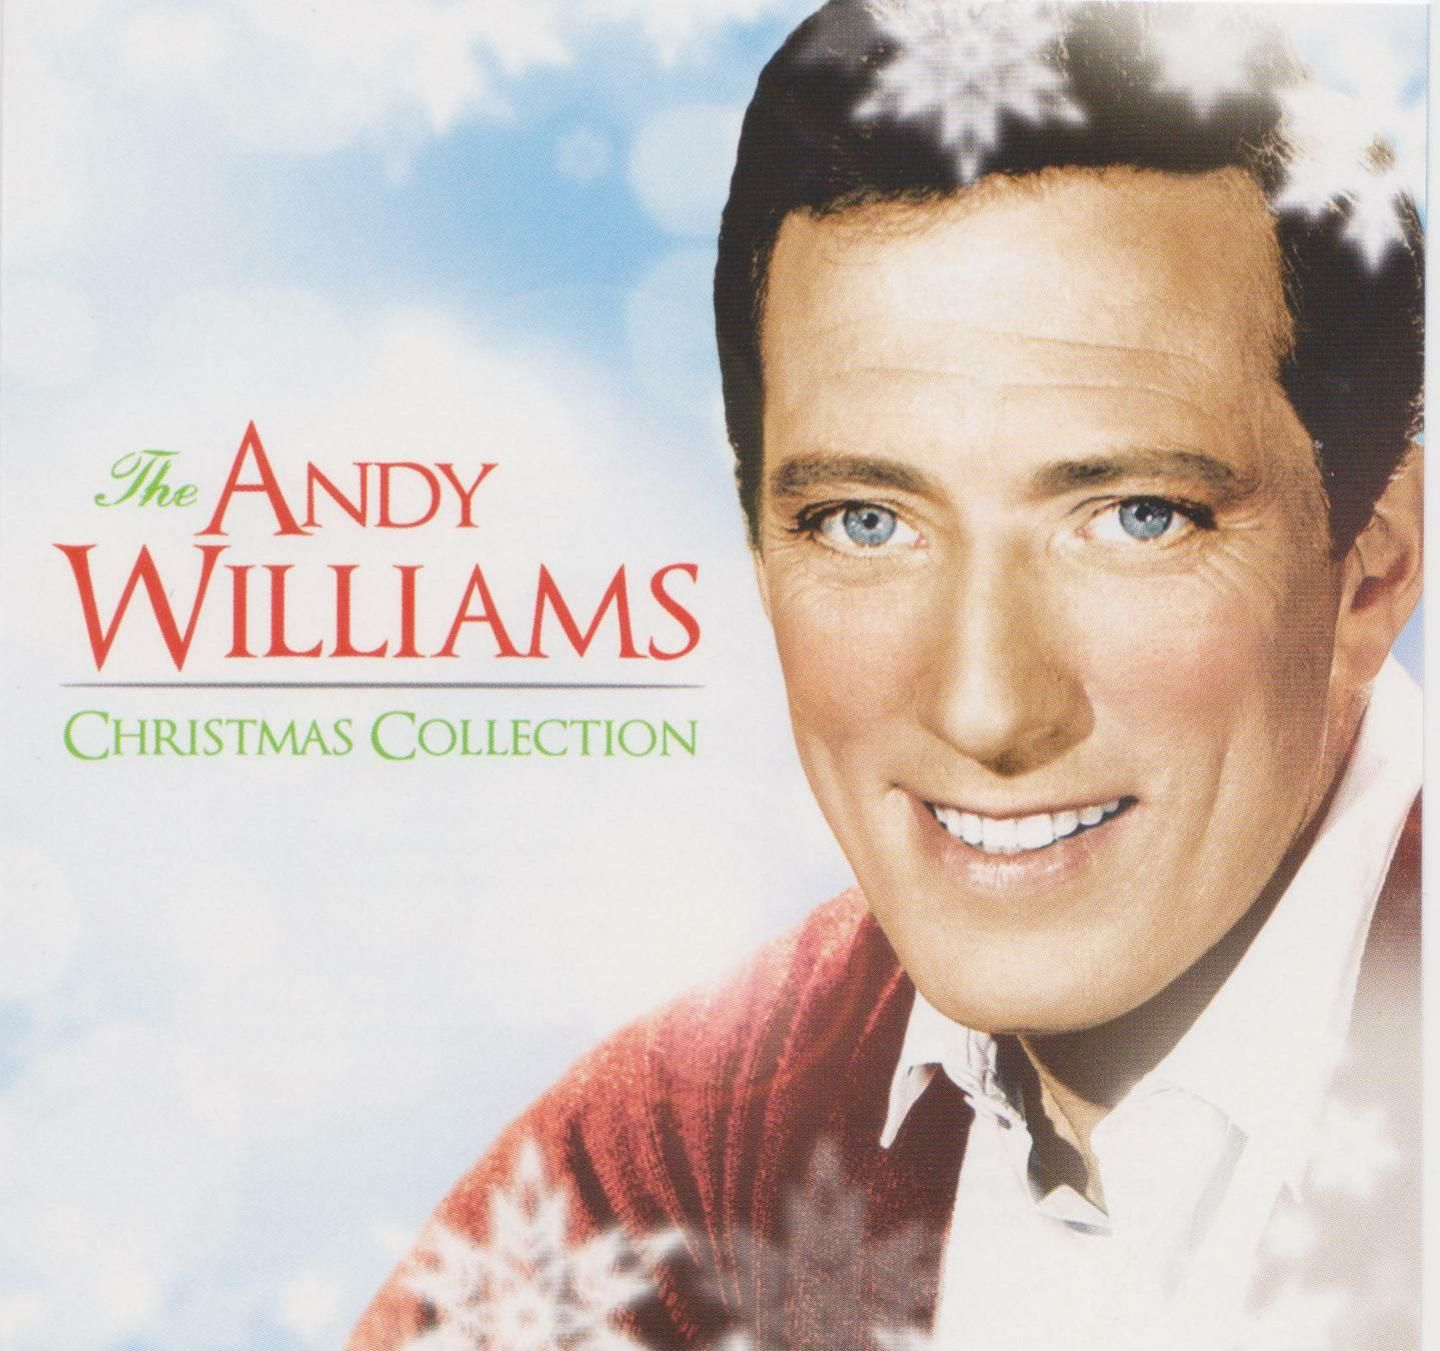 """andy williams dies - Bing Images 1927-2012. Known for song """"Moon River"""" and his TV show. 